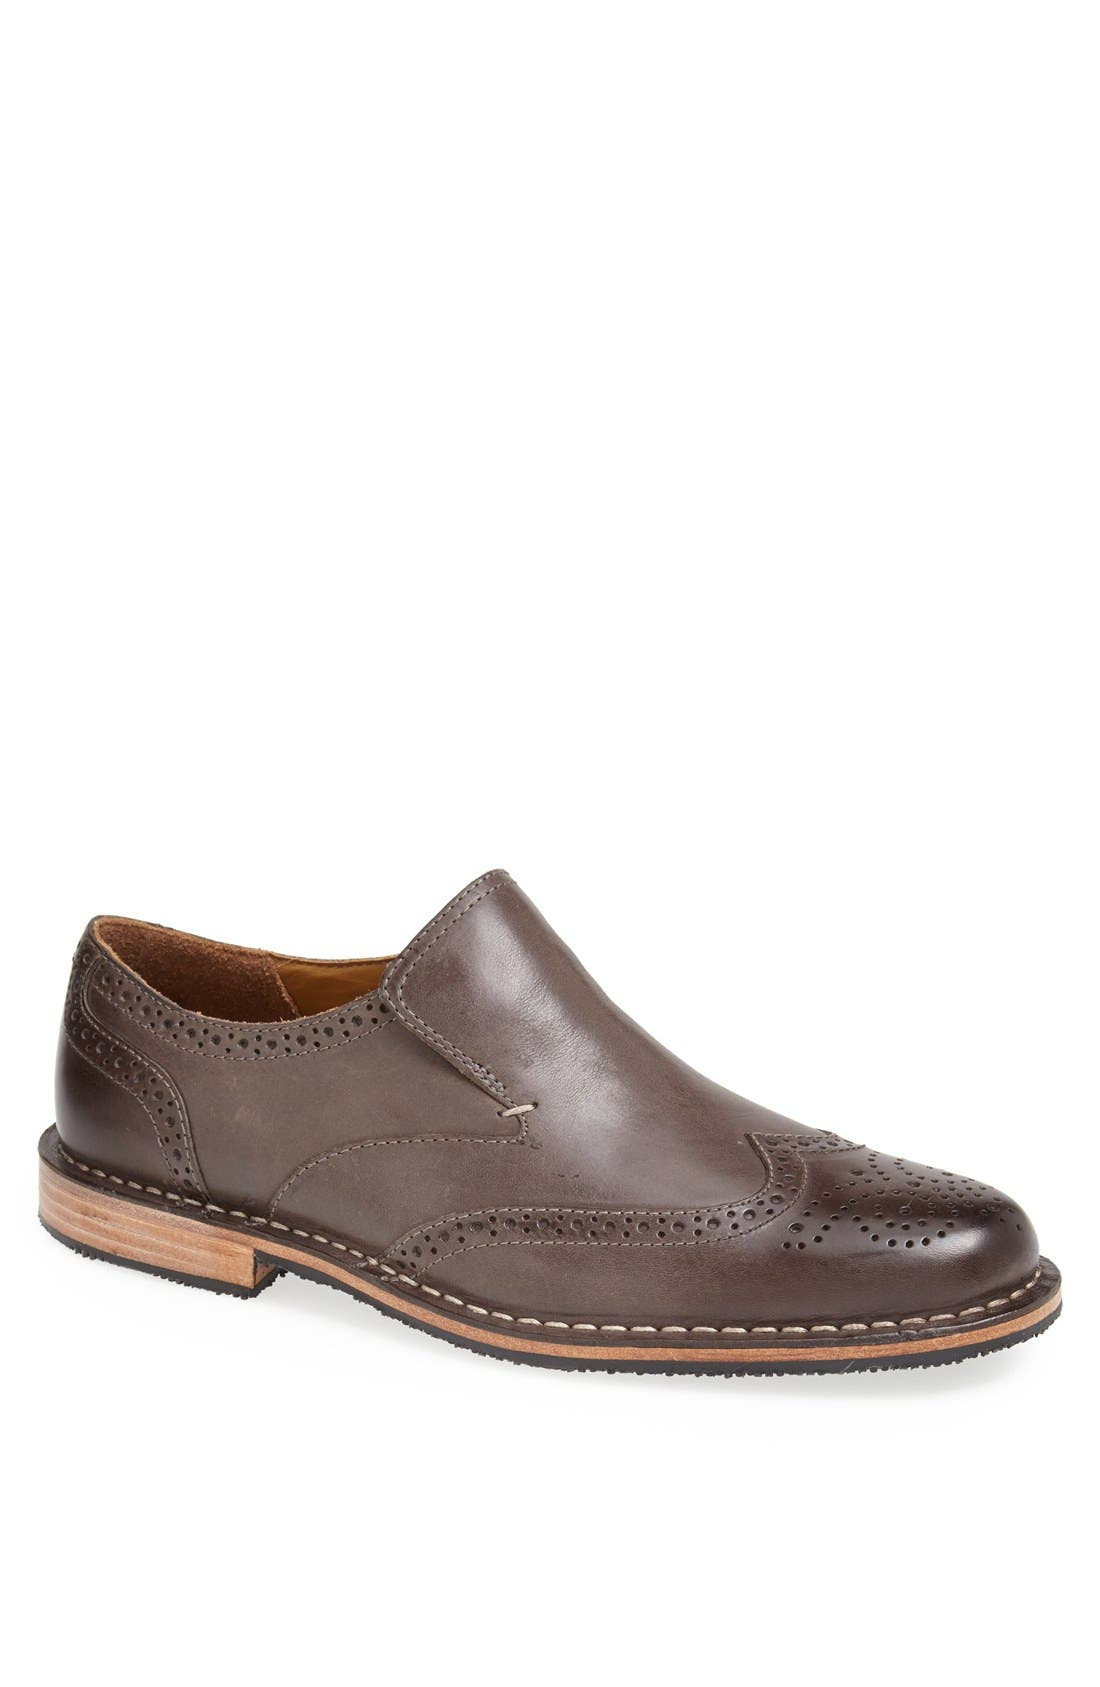 Alternate Image 1 Selected - Sebago 'Brattle' Venetian Loafer